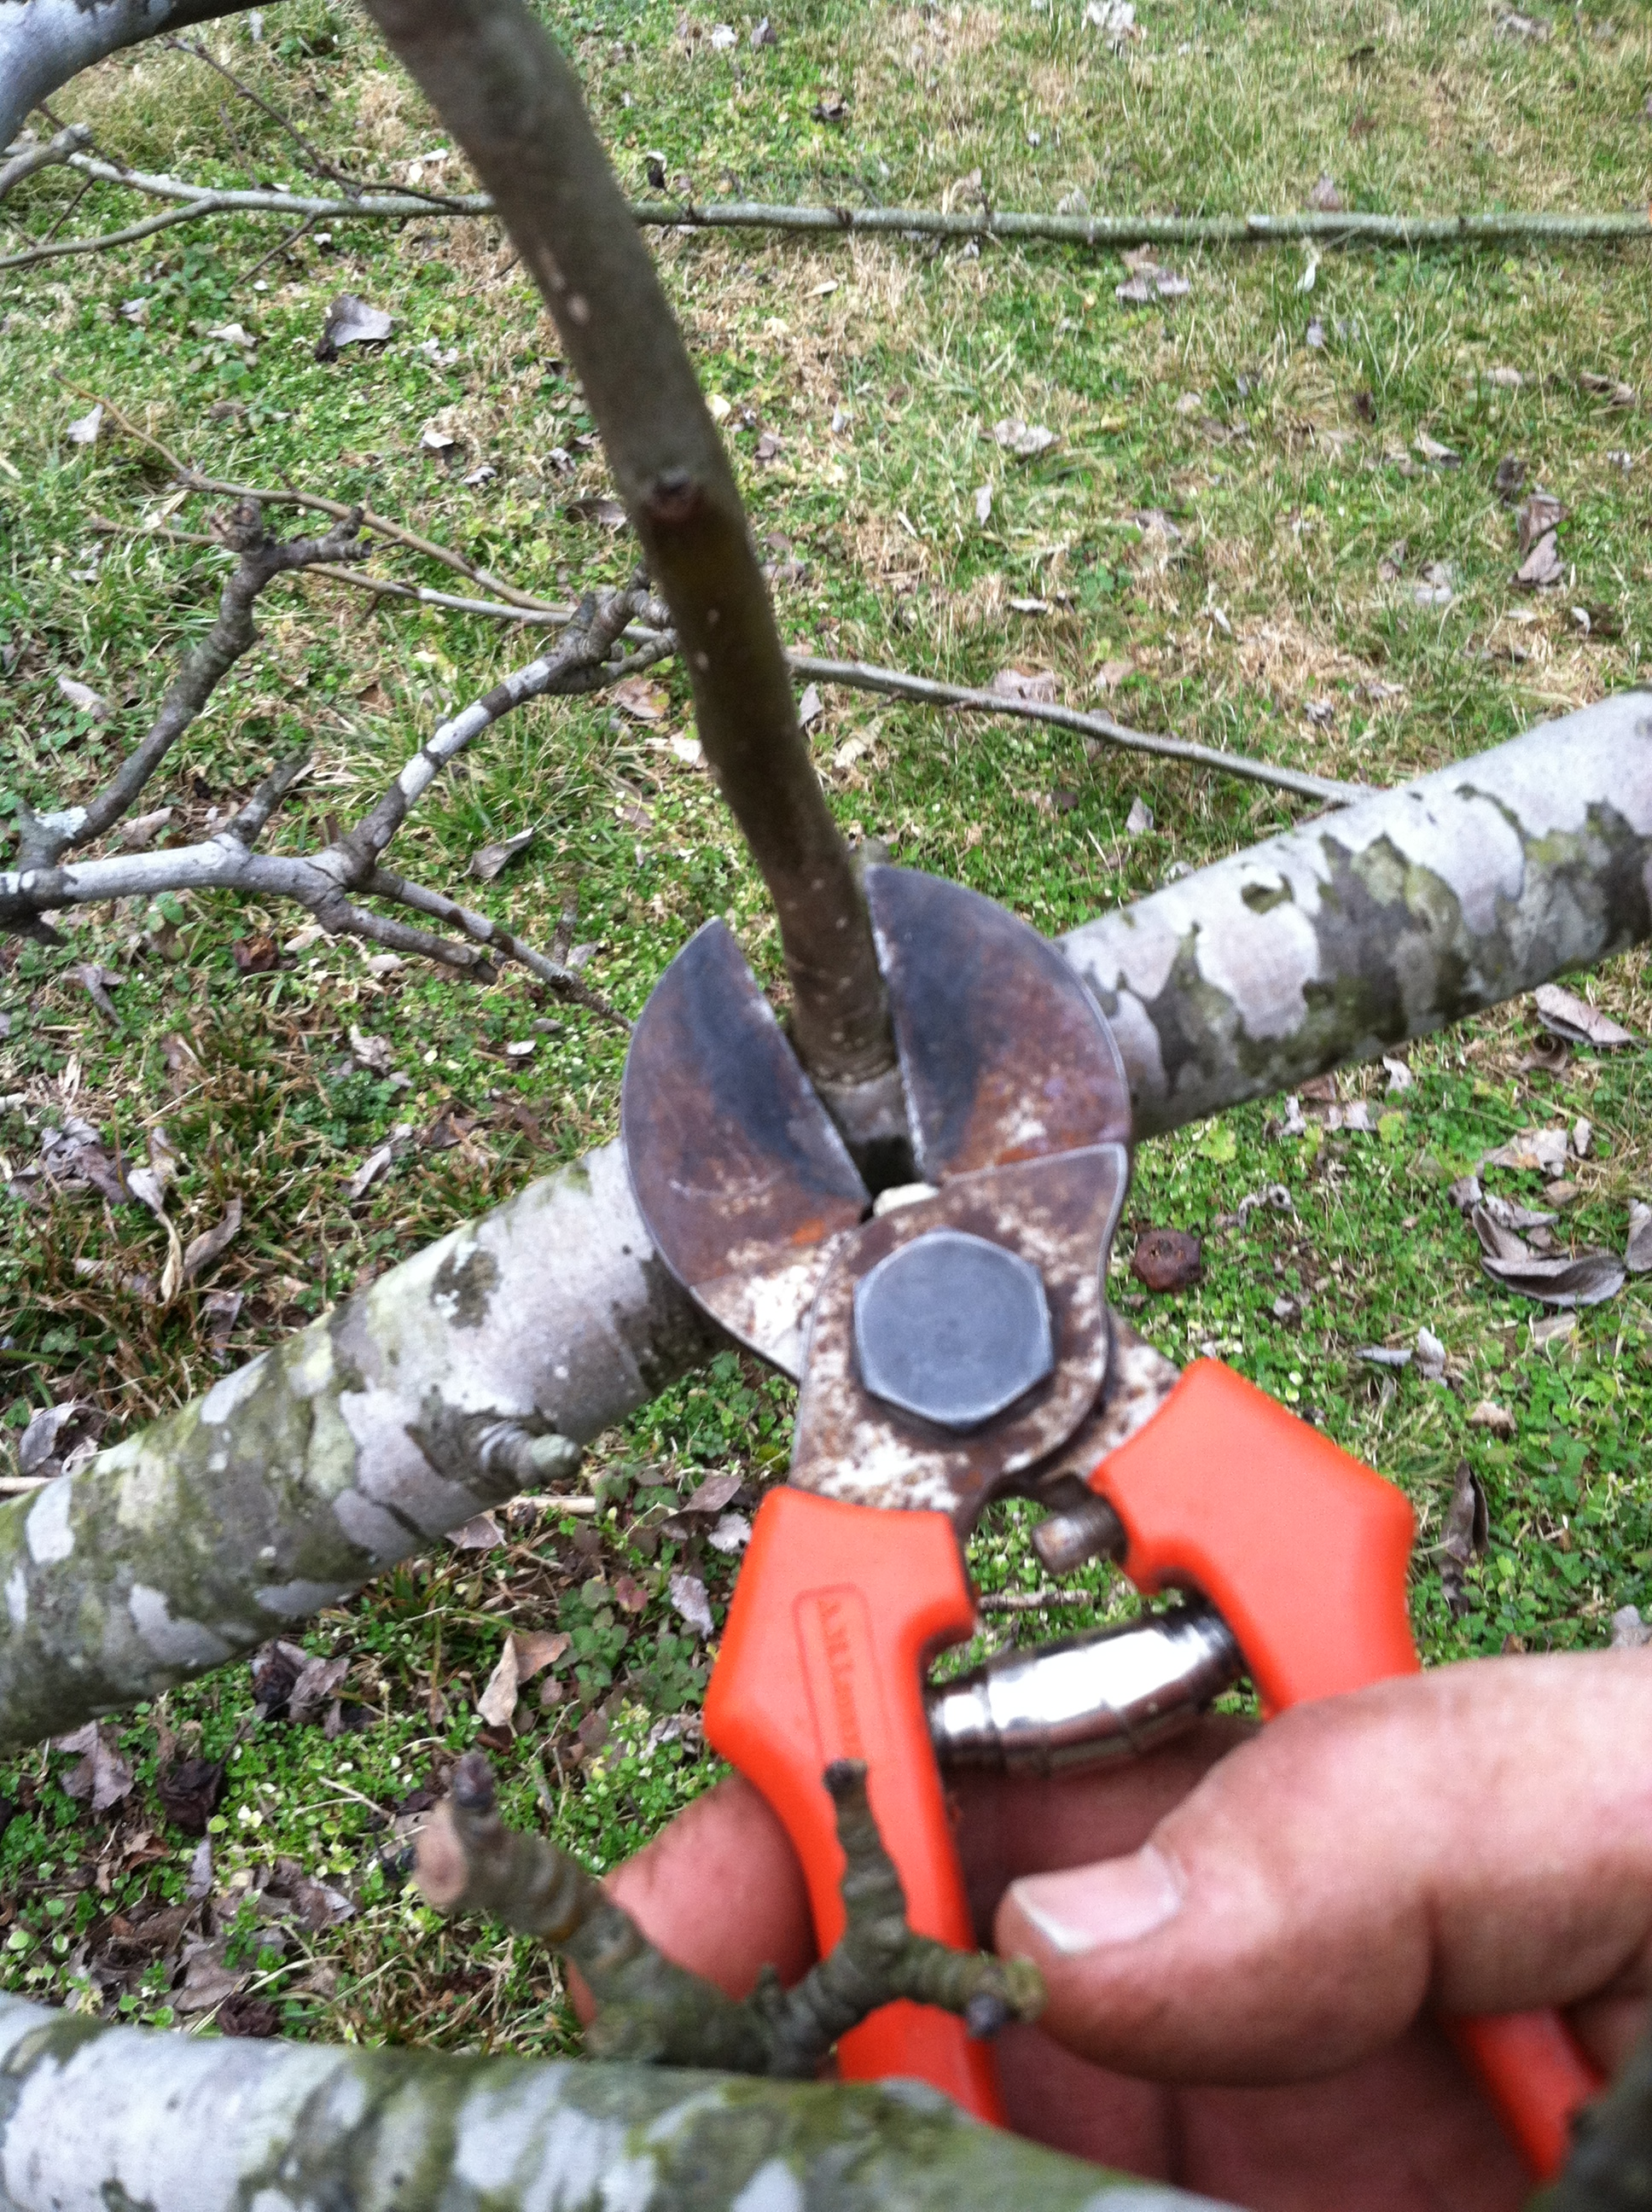 Delay Pruning To Avoid Winter Injury